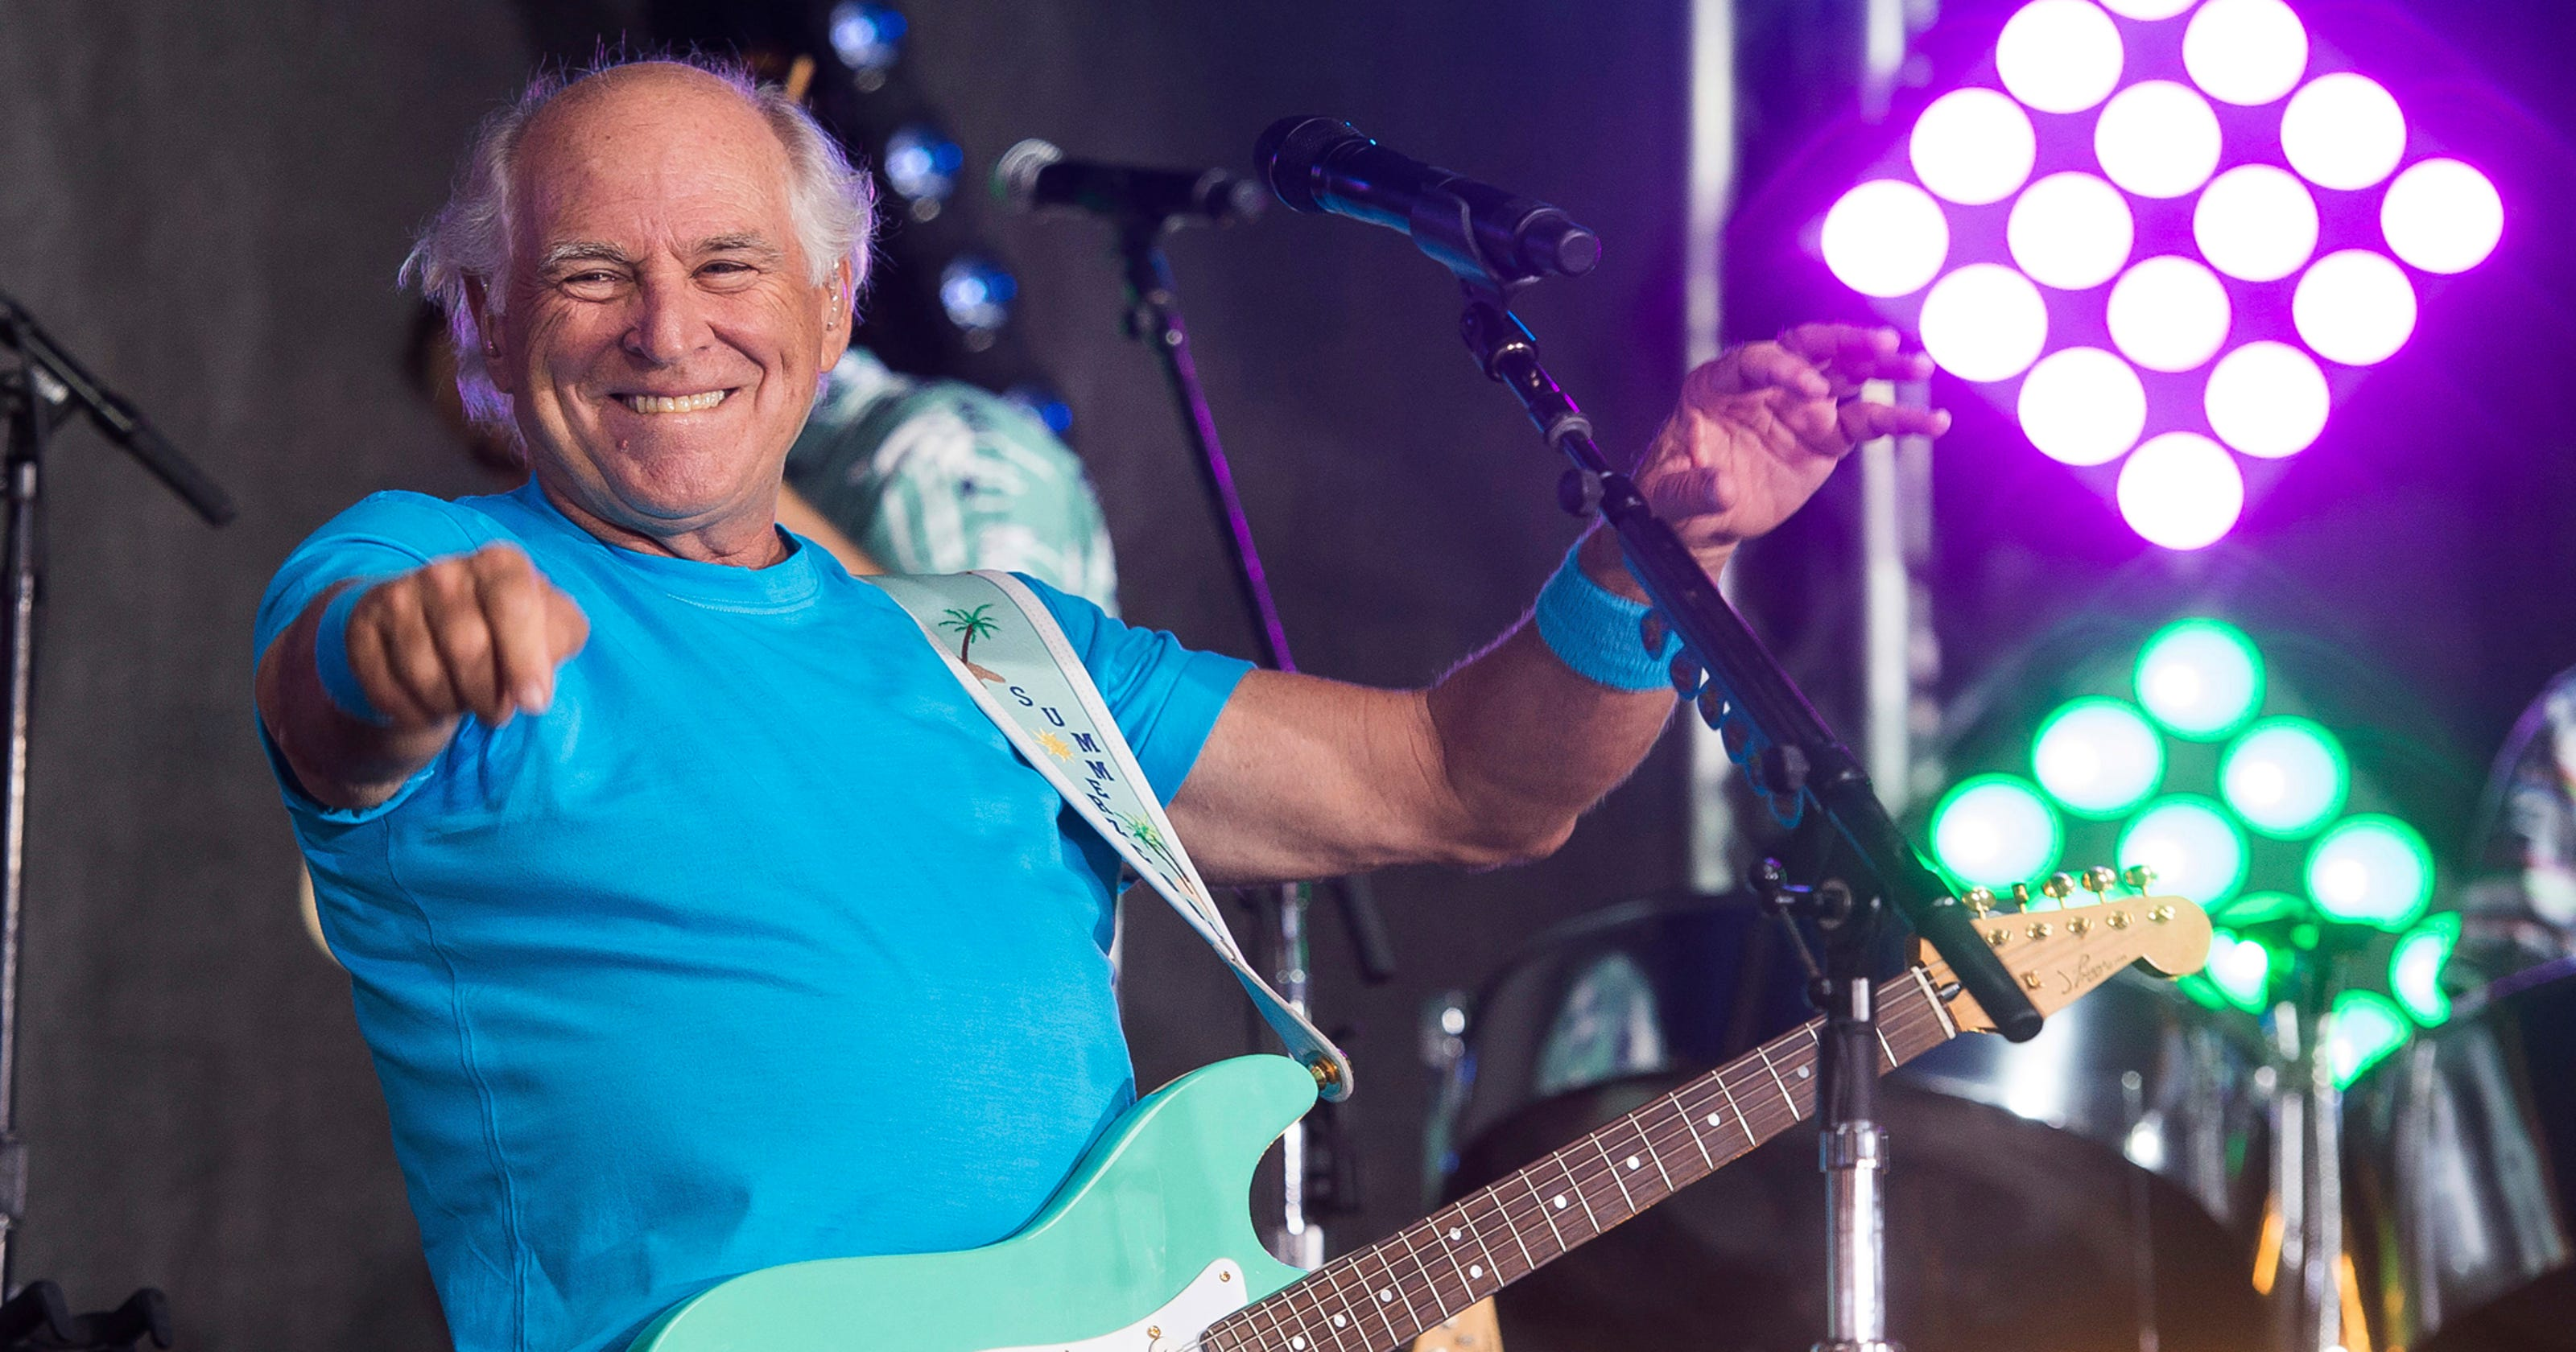 Jimmy Buffett to play Nashville concert on 2019 tour